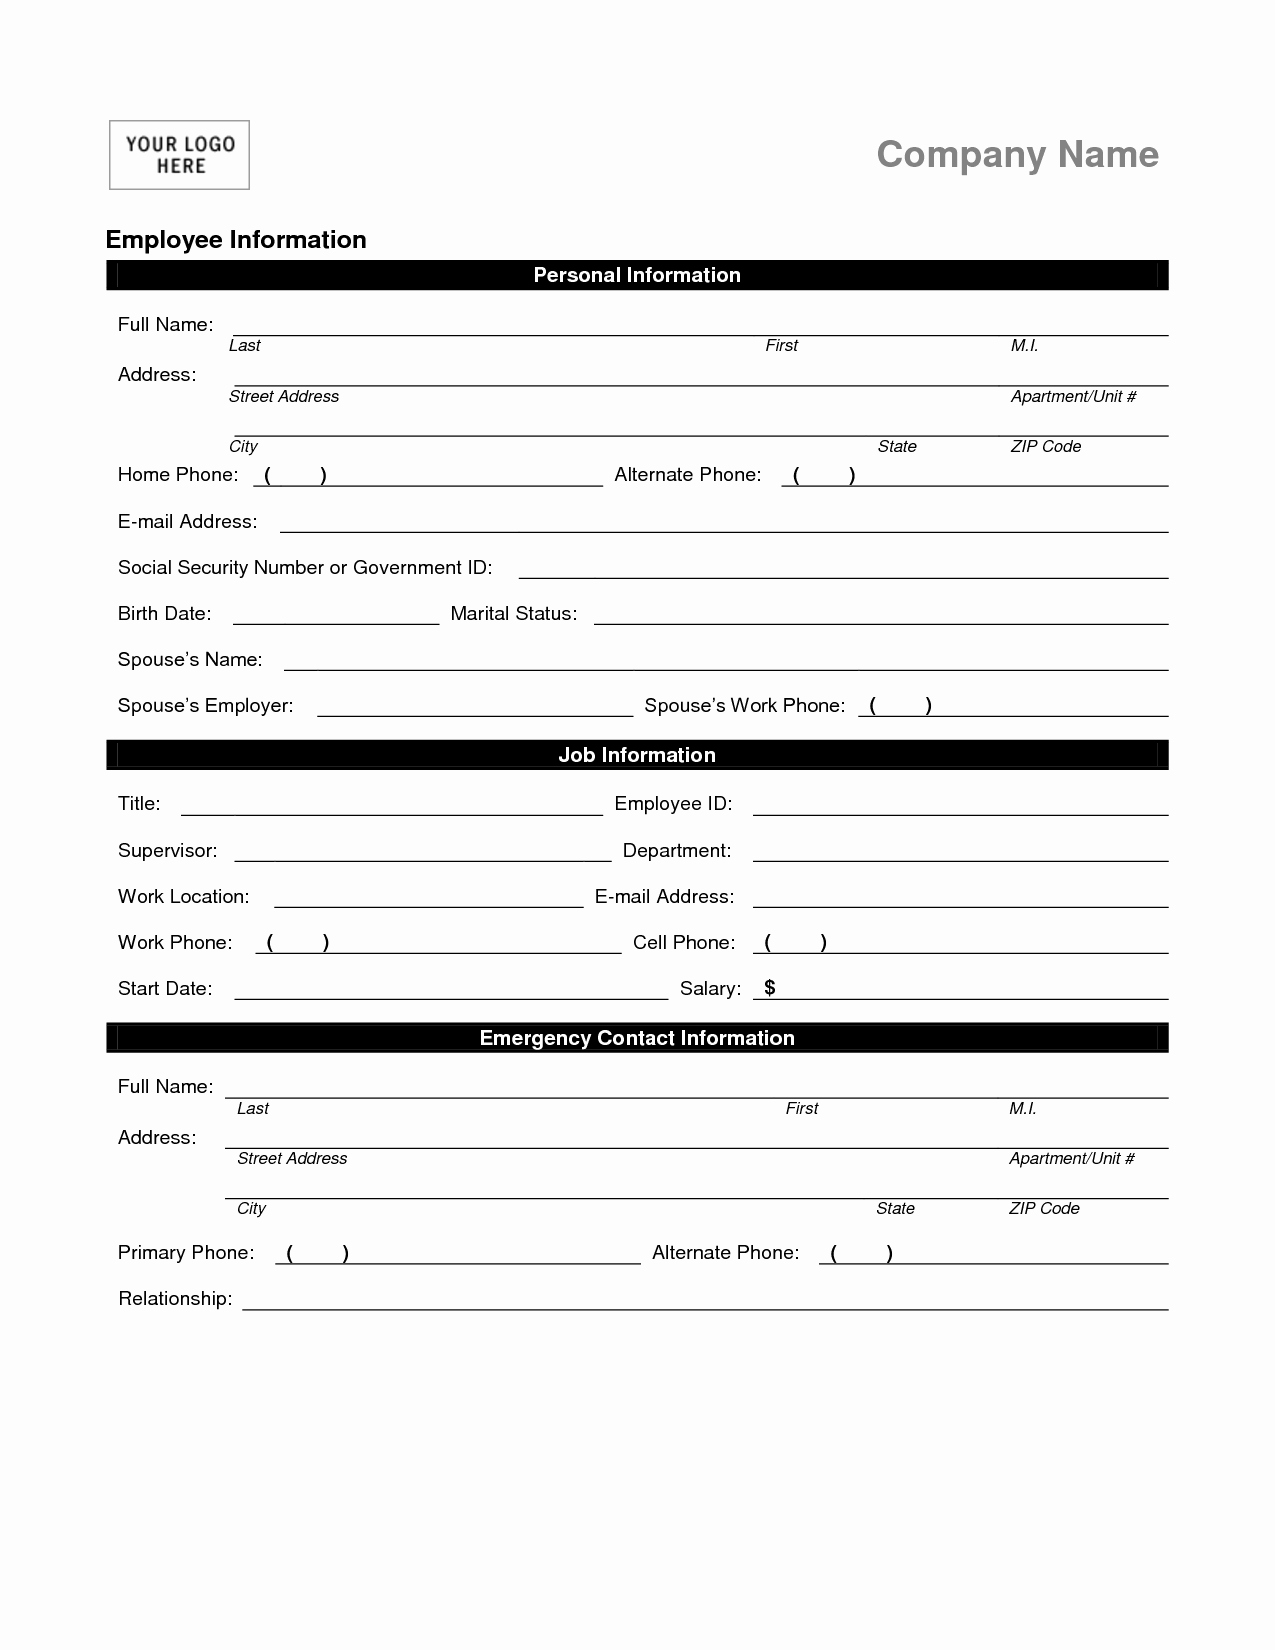 Employee Information form Template Best Of Employee Personal Information form Template